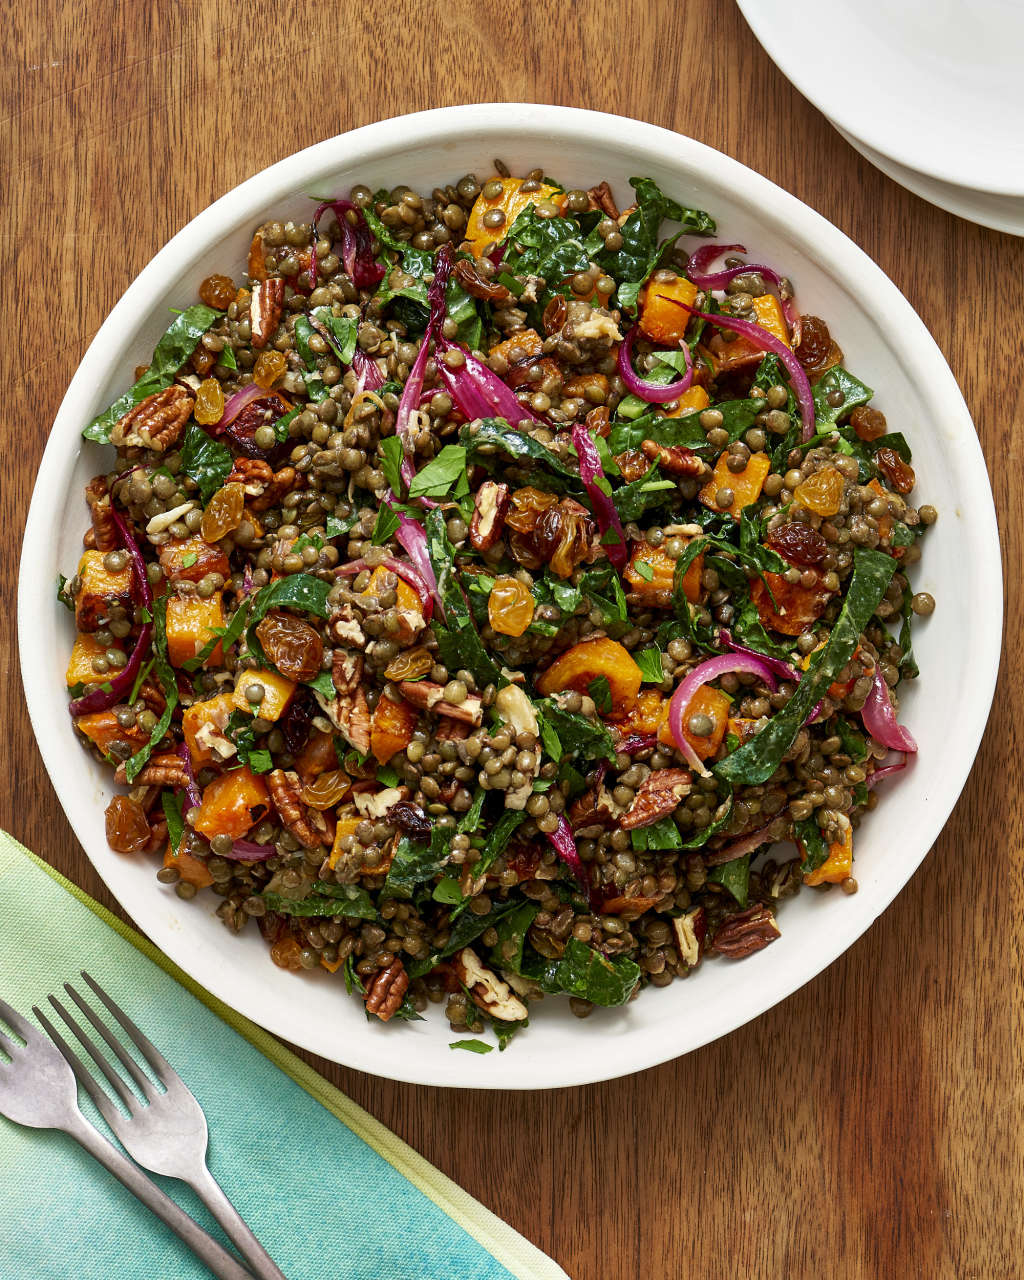 Thanksgiving Lentil Salad: The One Vegetarian Main to Serve